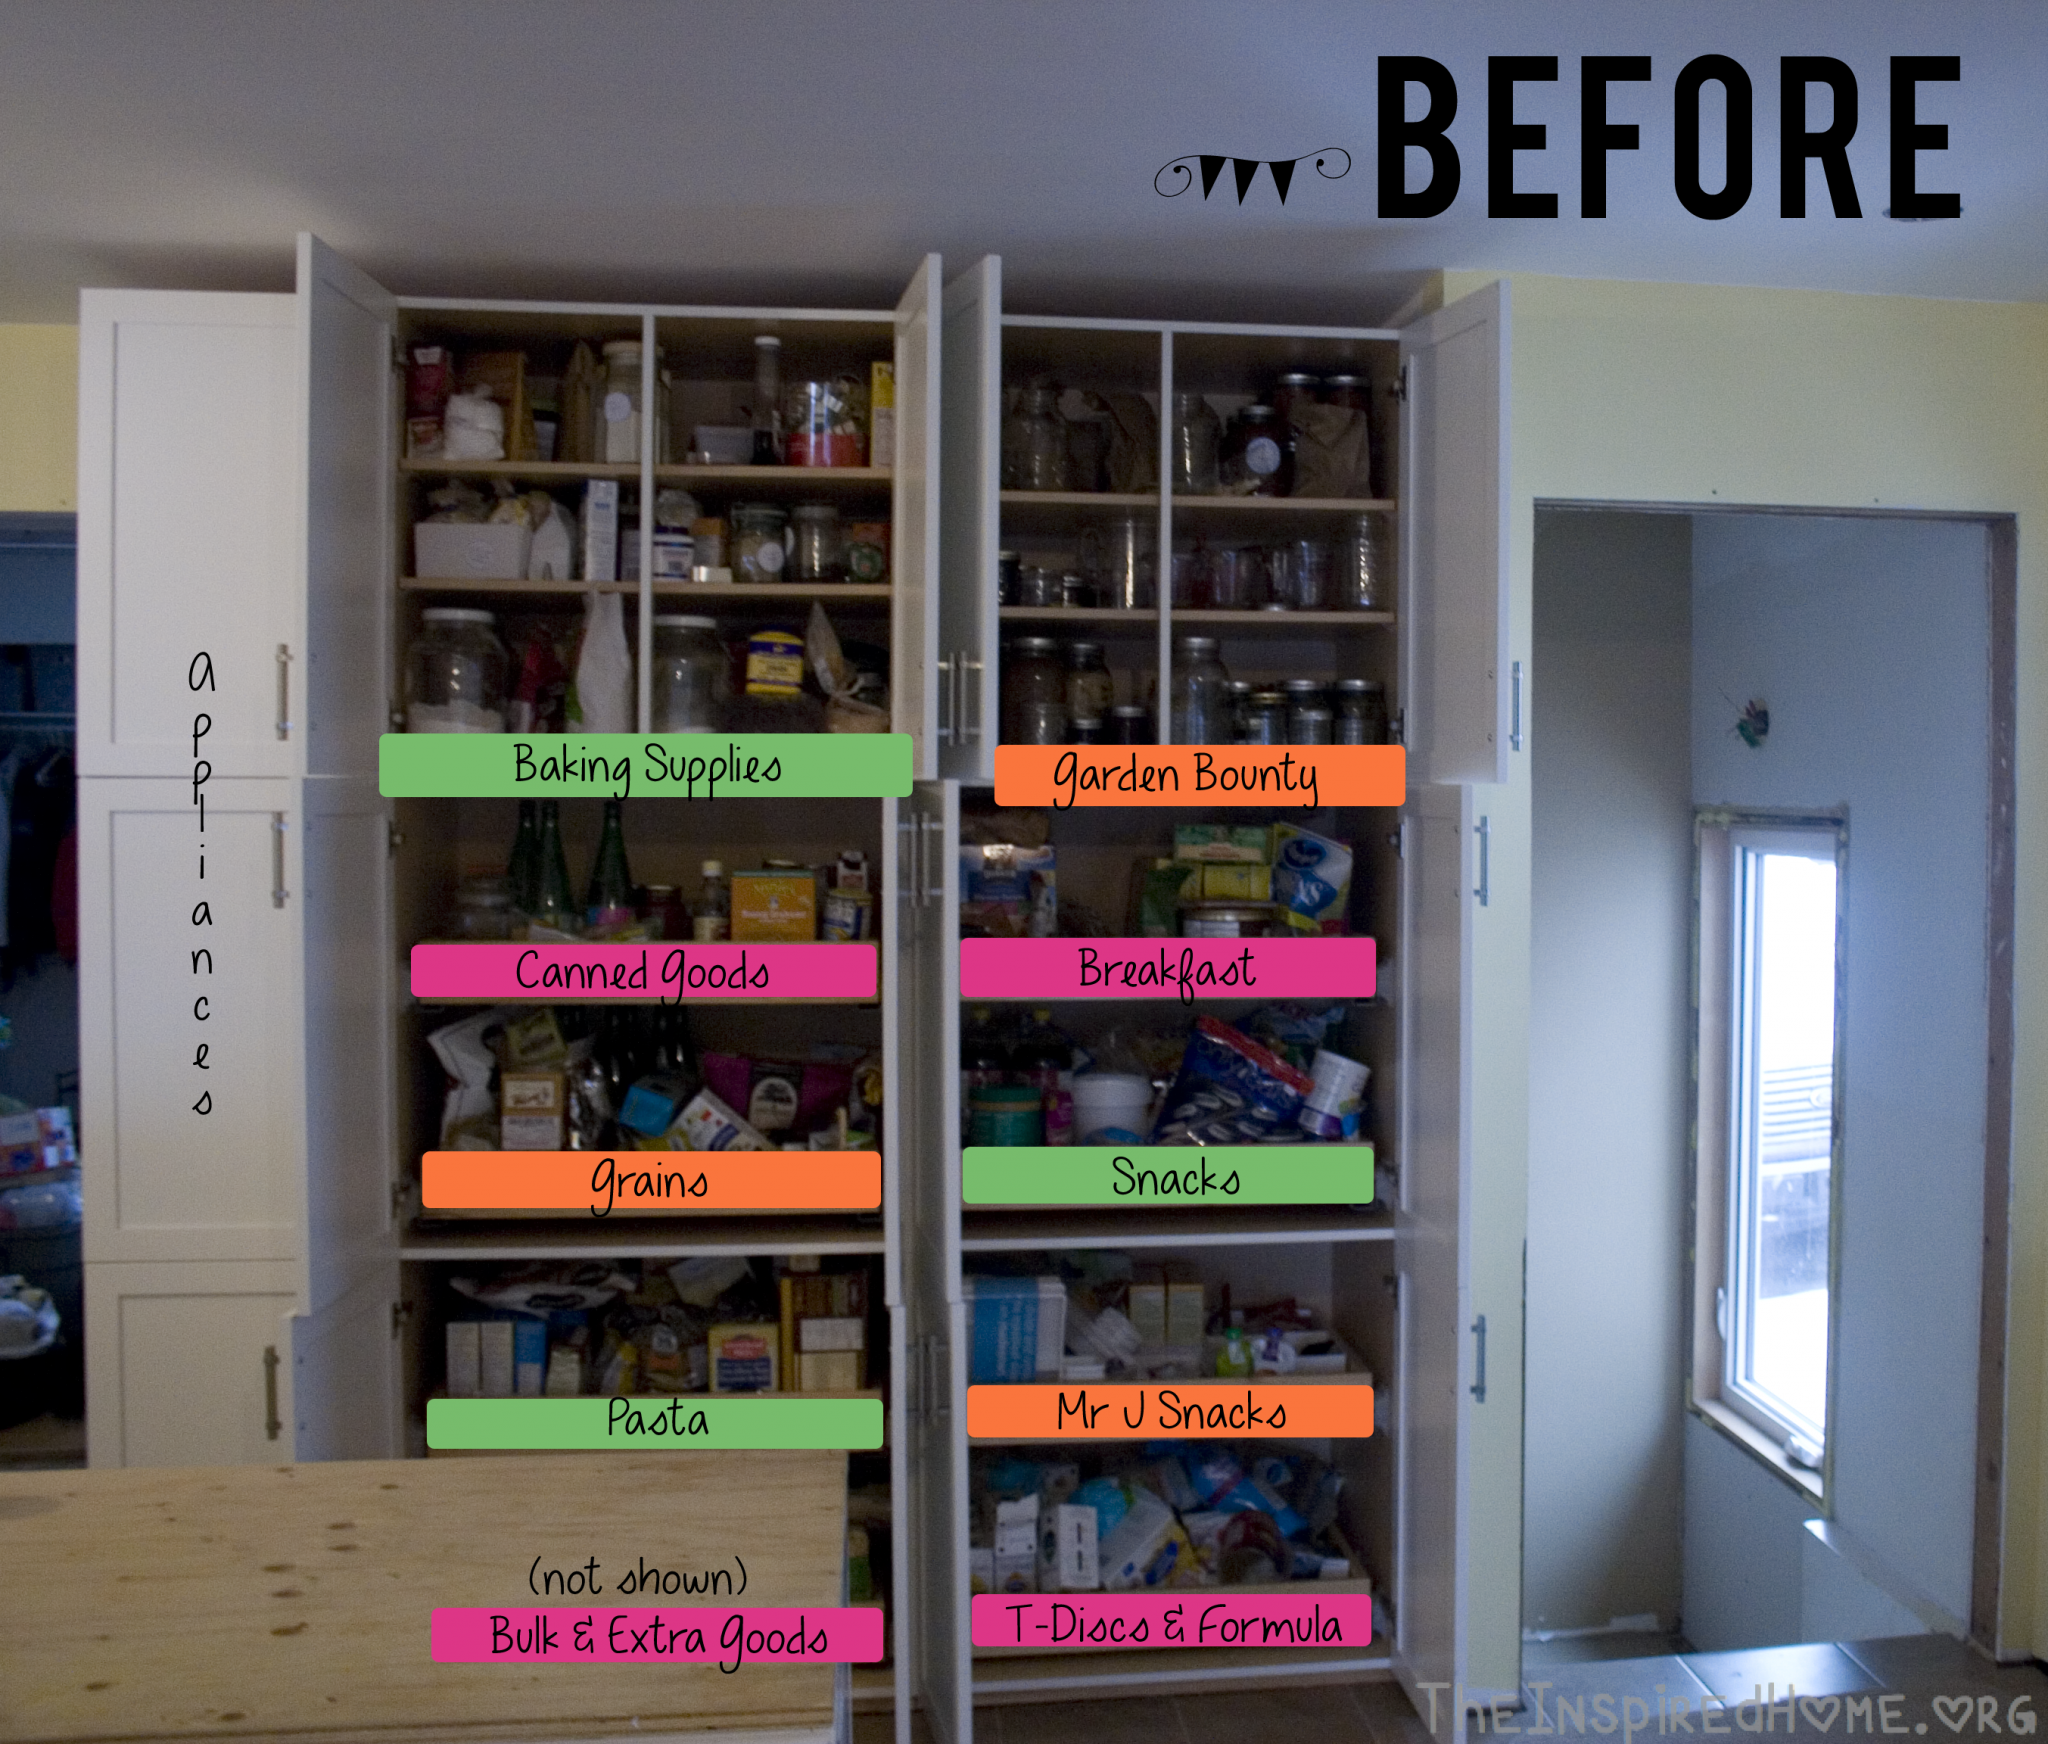 Effective Pantry Shelving Designs For Well Organized: Healthy Foods For Your Pantry & Pantry Organization • The